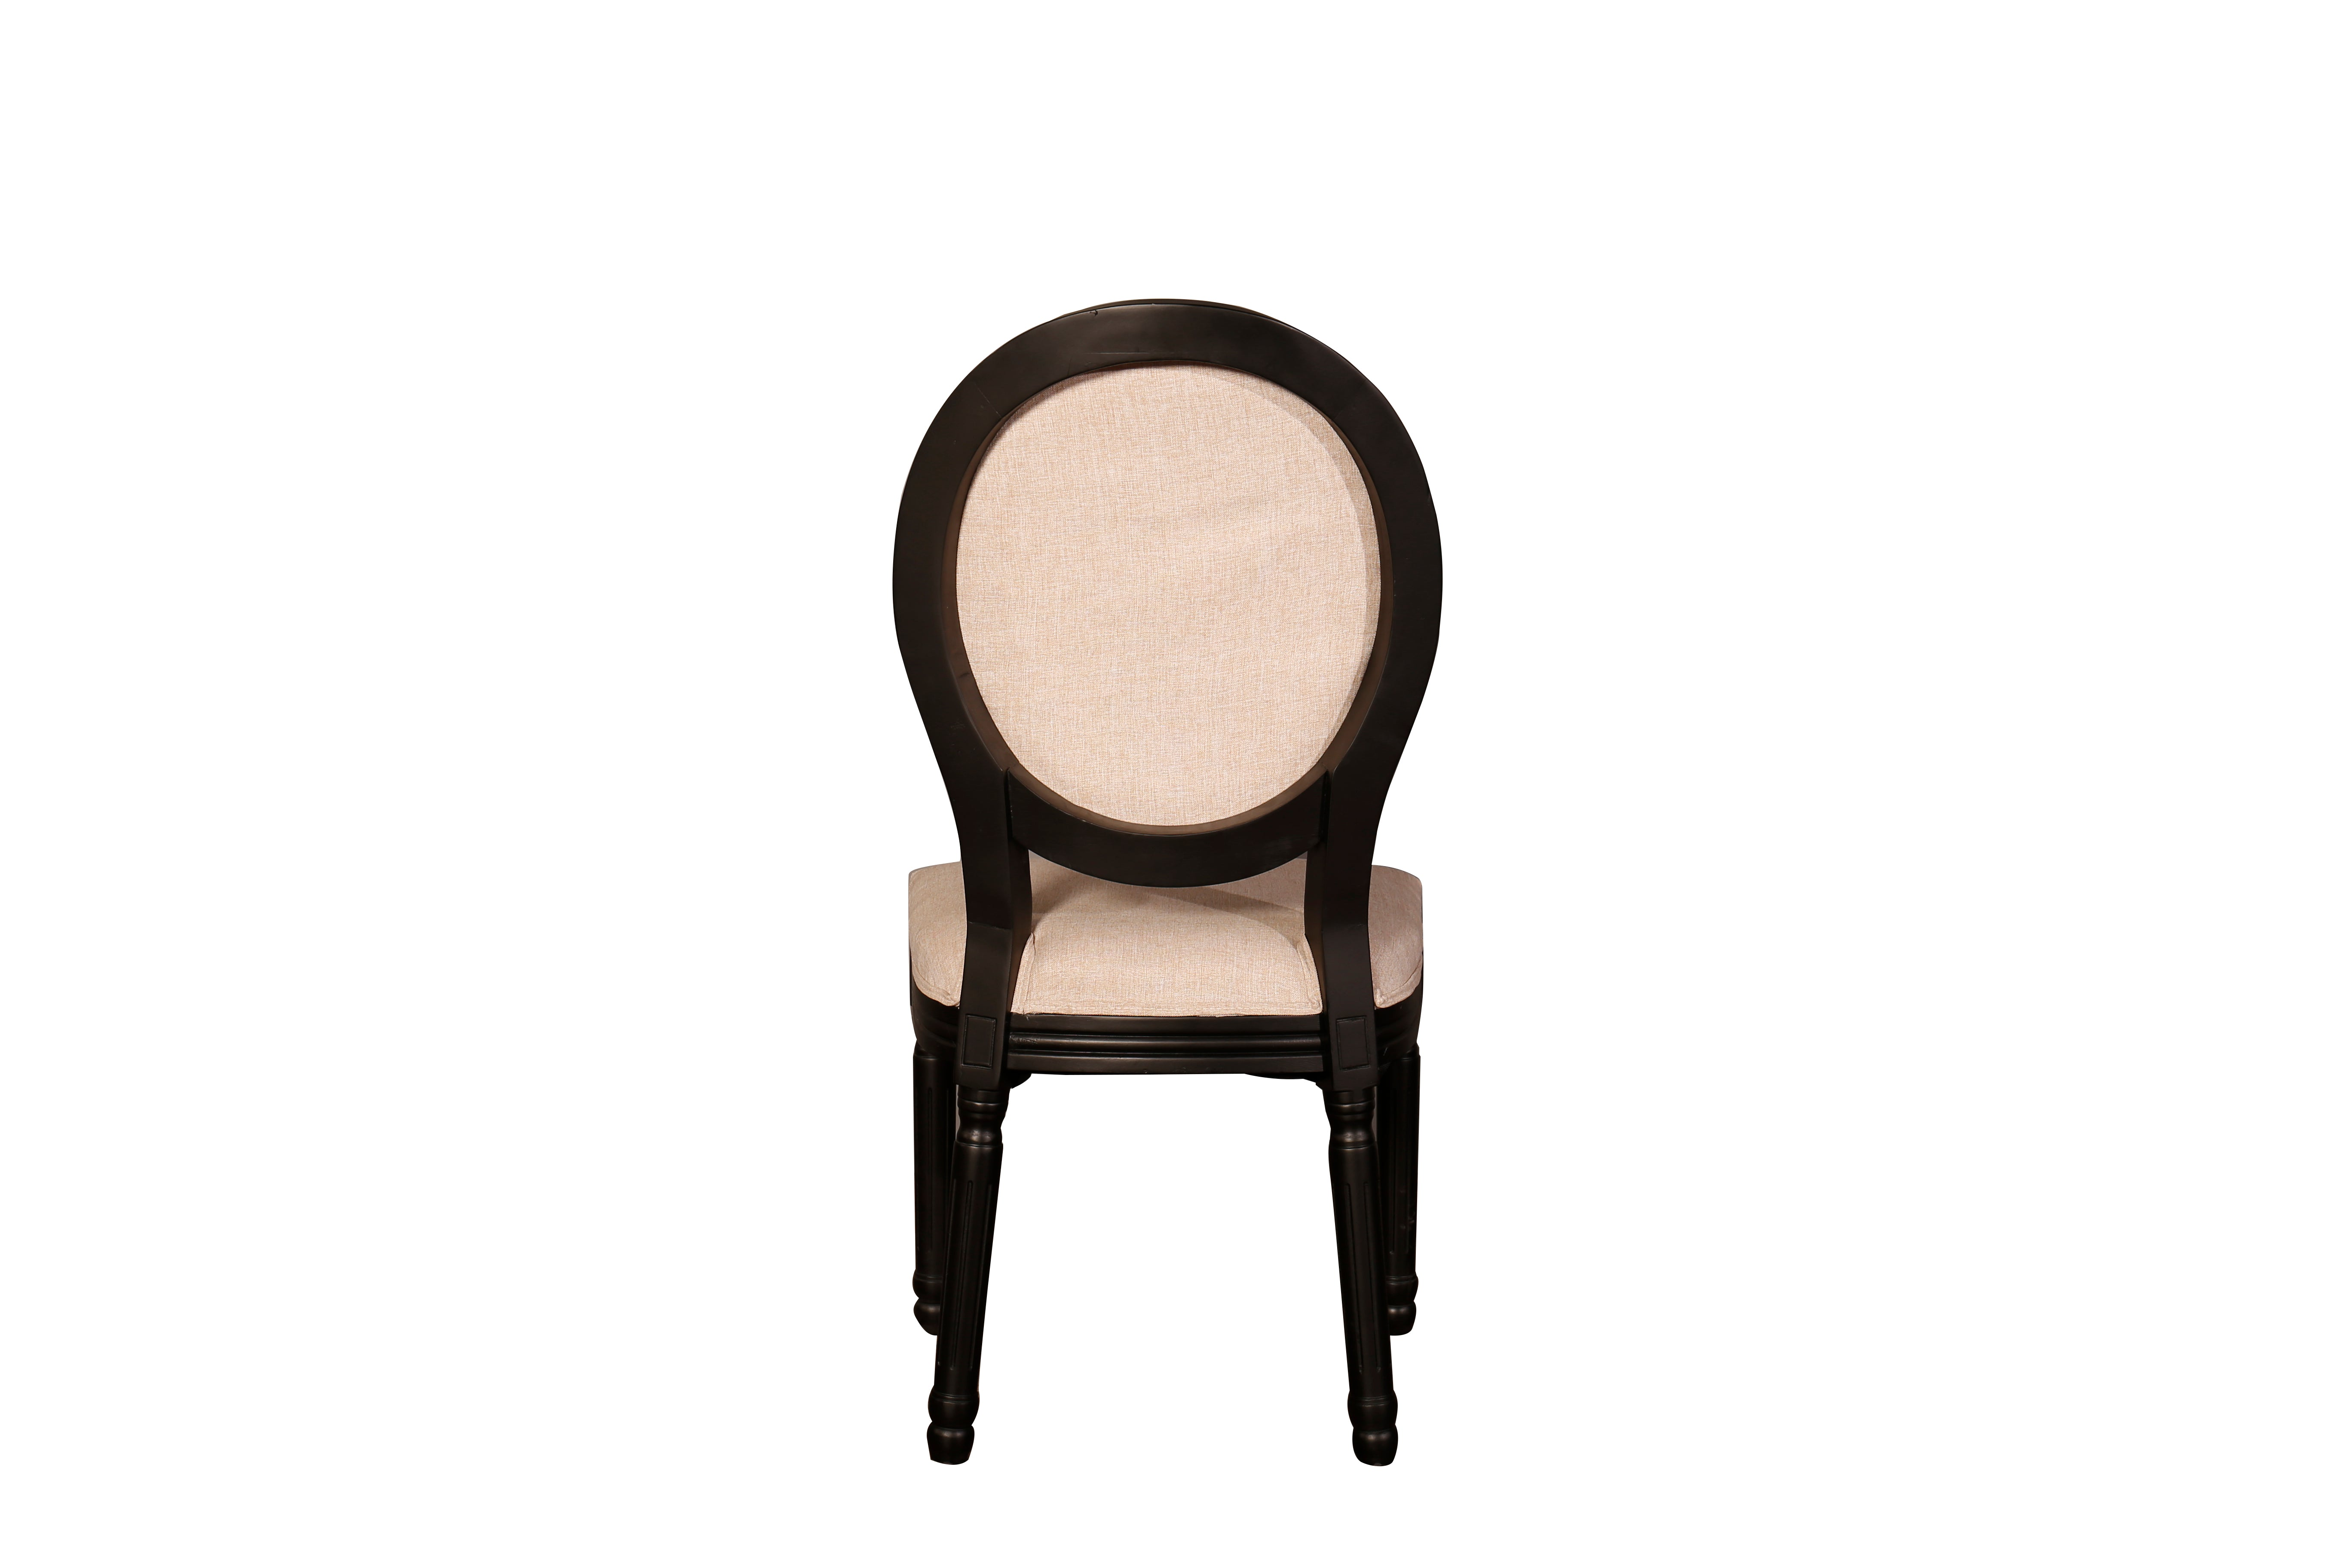 Vintage style dining chairs - Cassius 2 Piece Vintage Style Dining Chairs